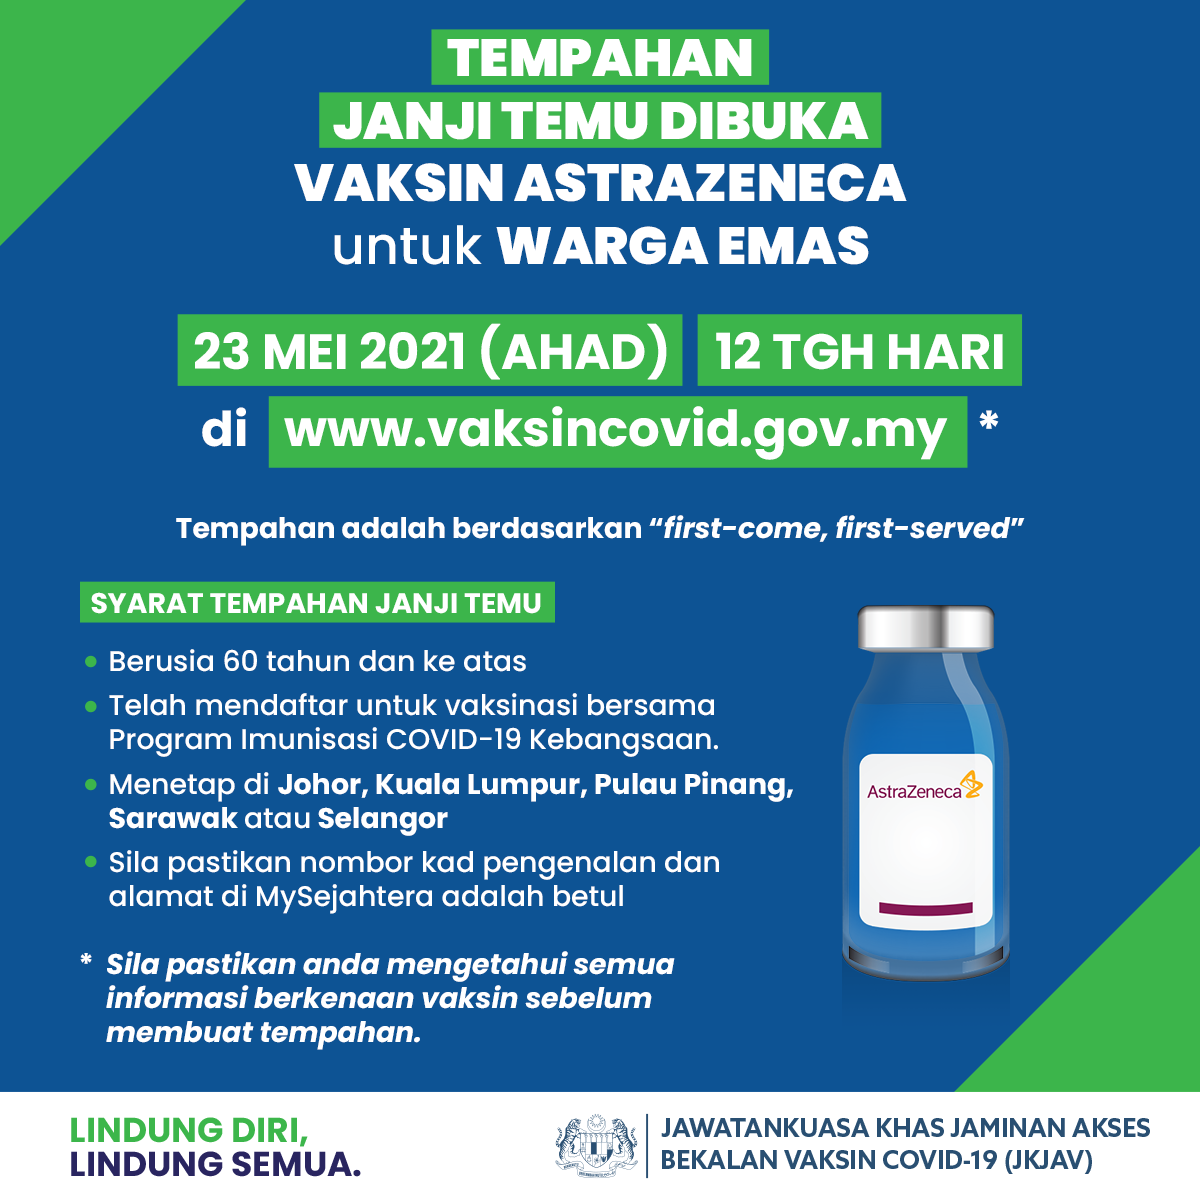 Vaksin Covid 19 On Twitter The Astrazeneca Vaccine Booking For Senior Citizens Is Now Open Book Your Slot Here Https T Co Obsmiwaj6o Open For Residents In Johor Penang Kuala Lumpur Sarawak Or Selangor First Come